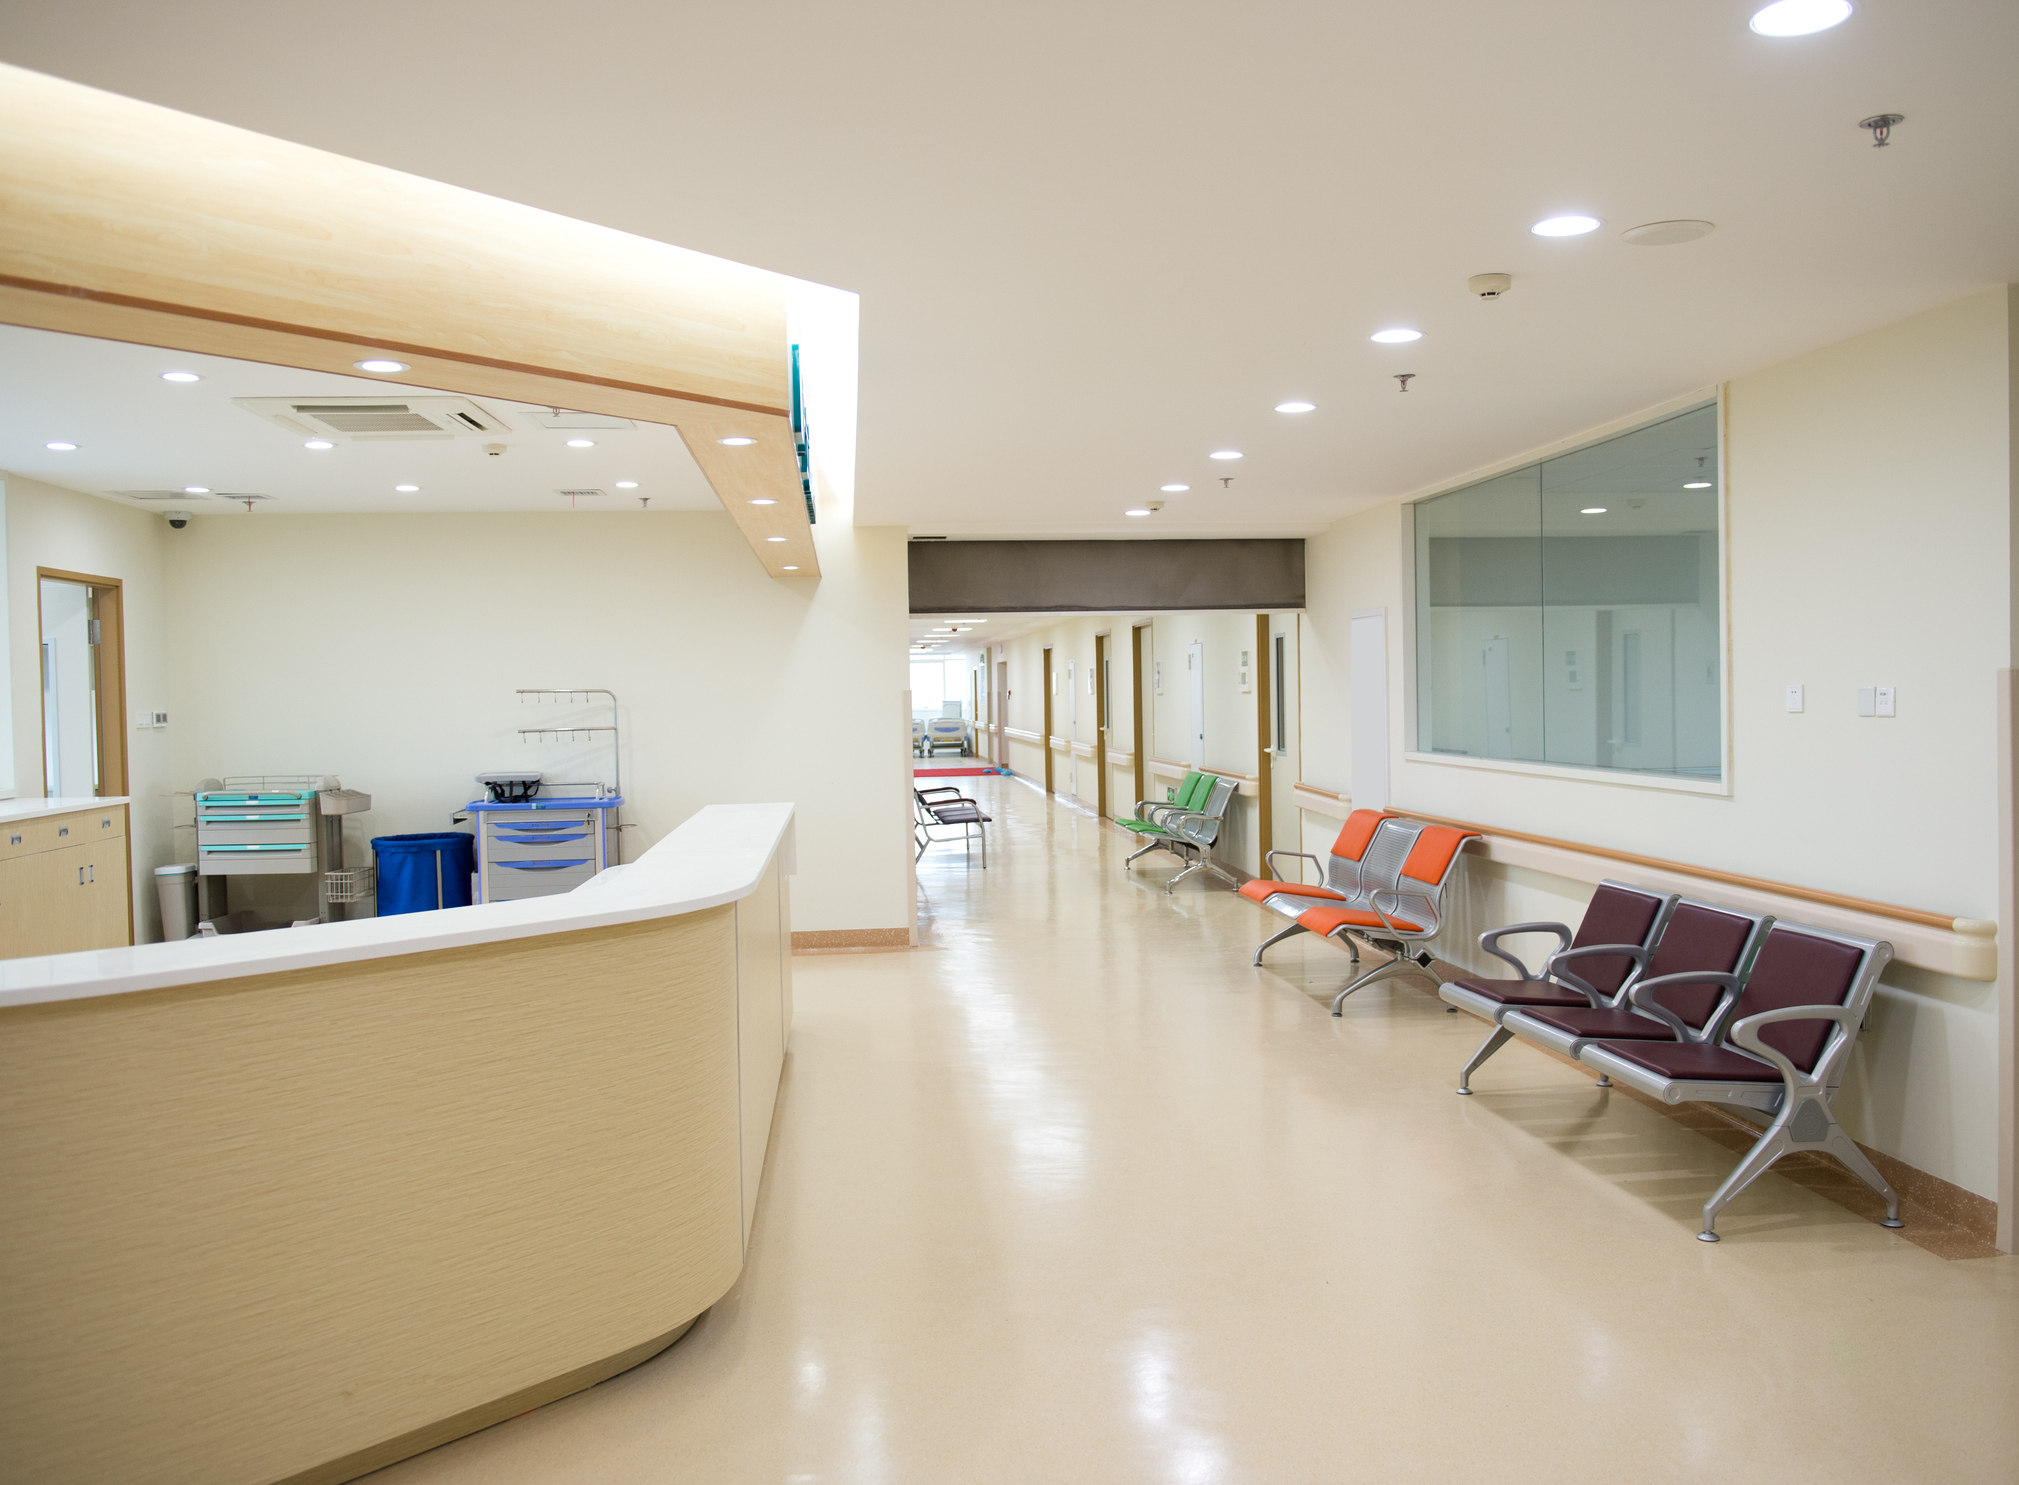 Reception & Waiting Areas: - Clean Entrance GlassArrange & Organize Waiting AreaDry Dust Surfaces (as Specified)Empty Trash and Replace LinersVacuum and Mop Floor Areas